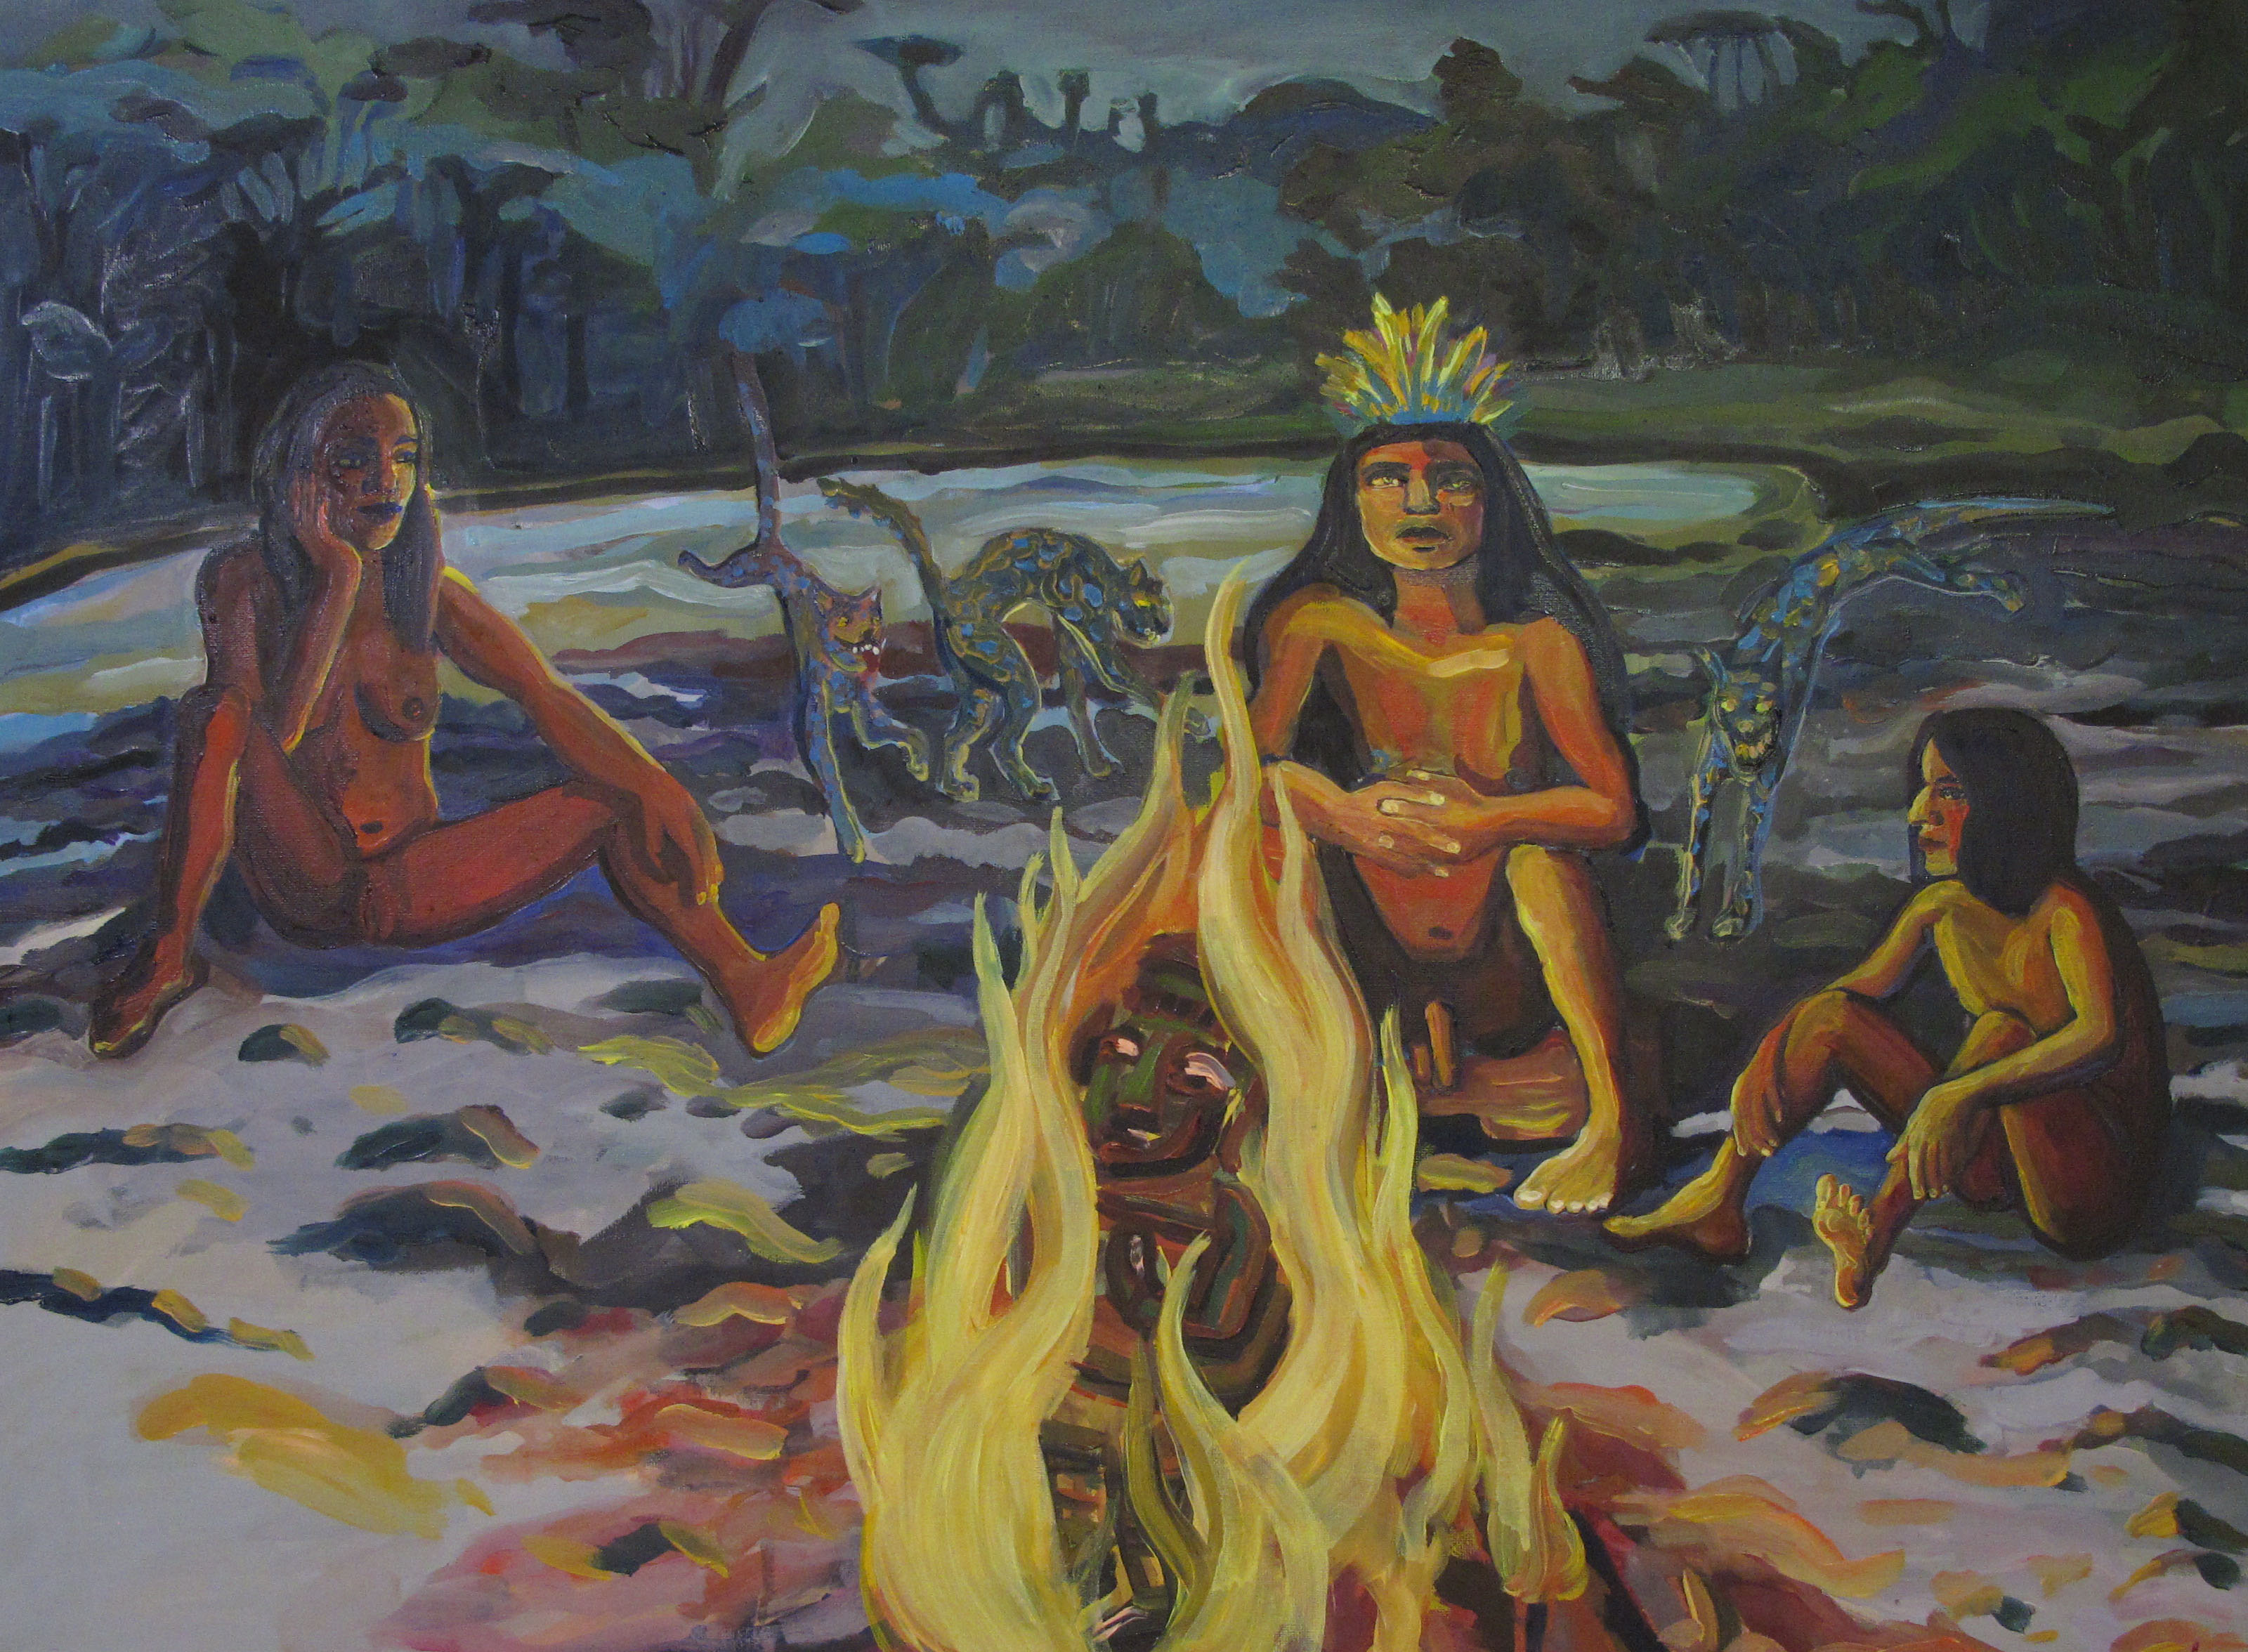 In protection of fire, 80x60 cm, oil on canvas, 2015